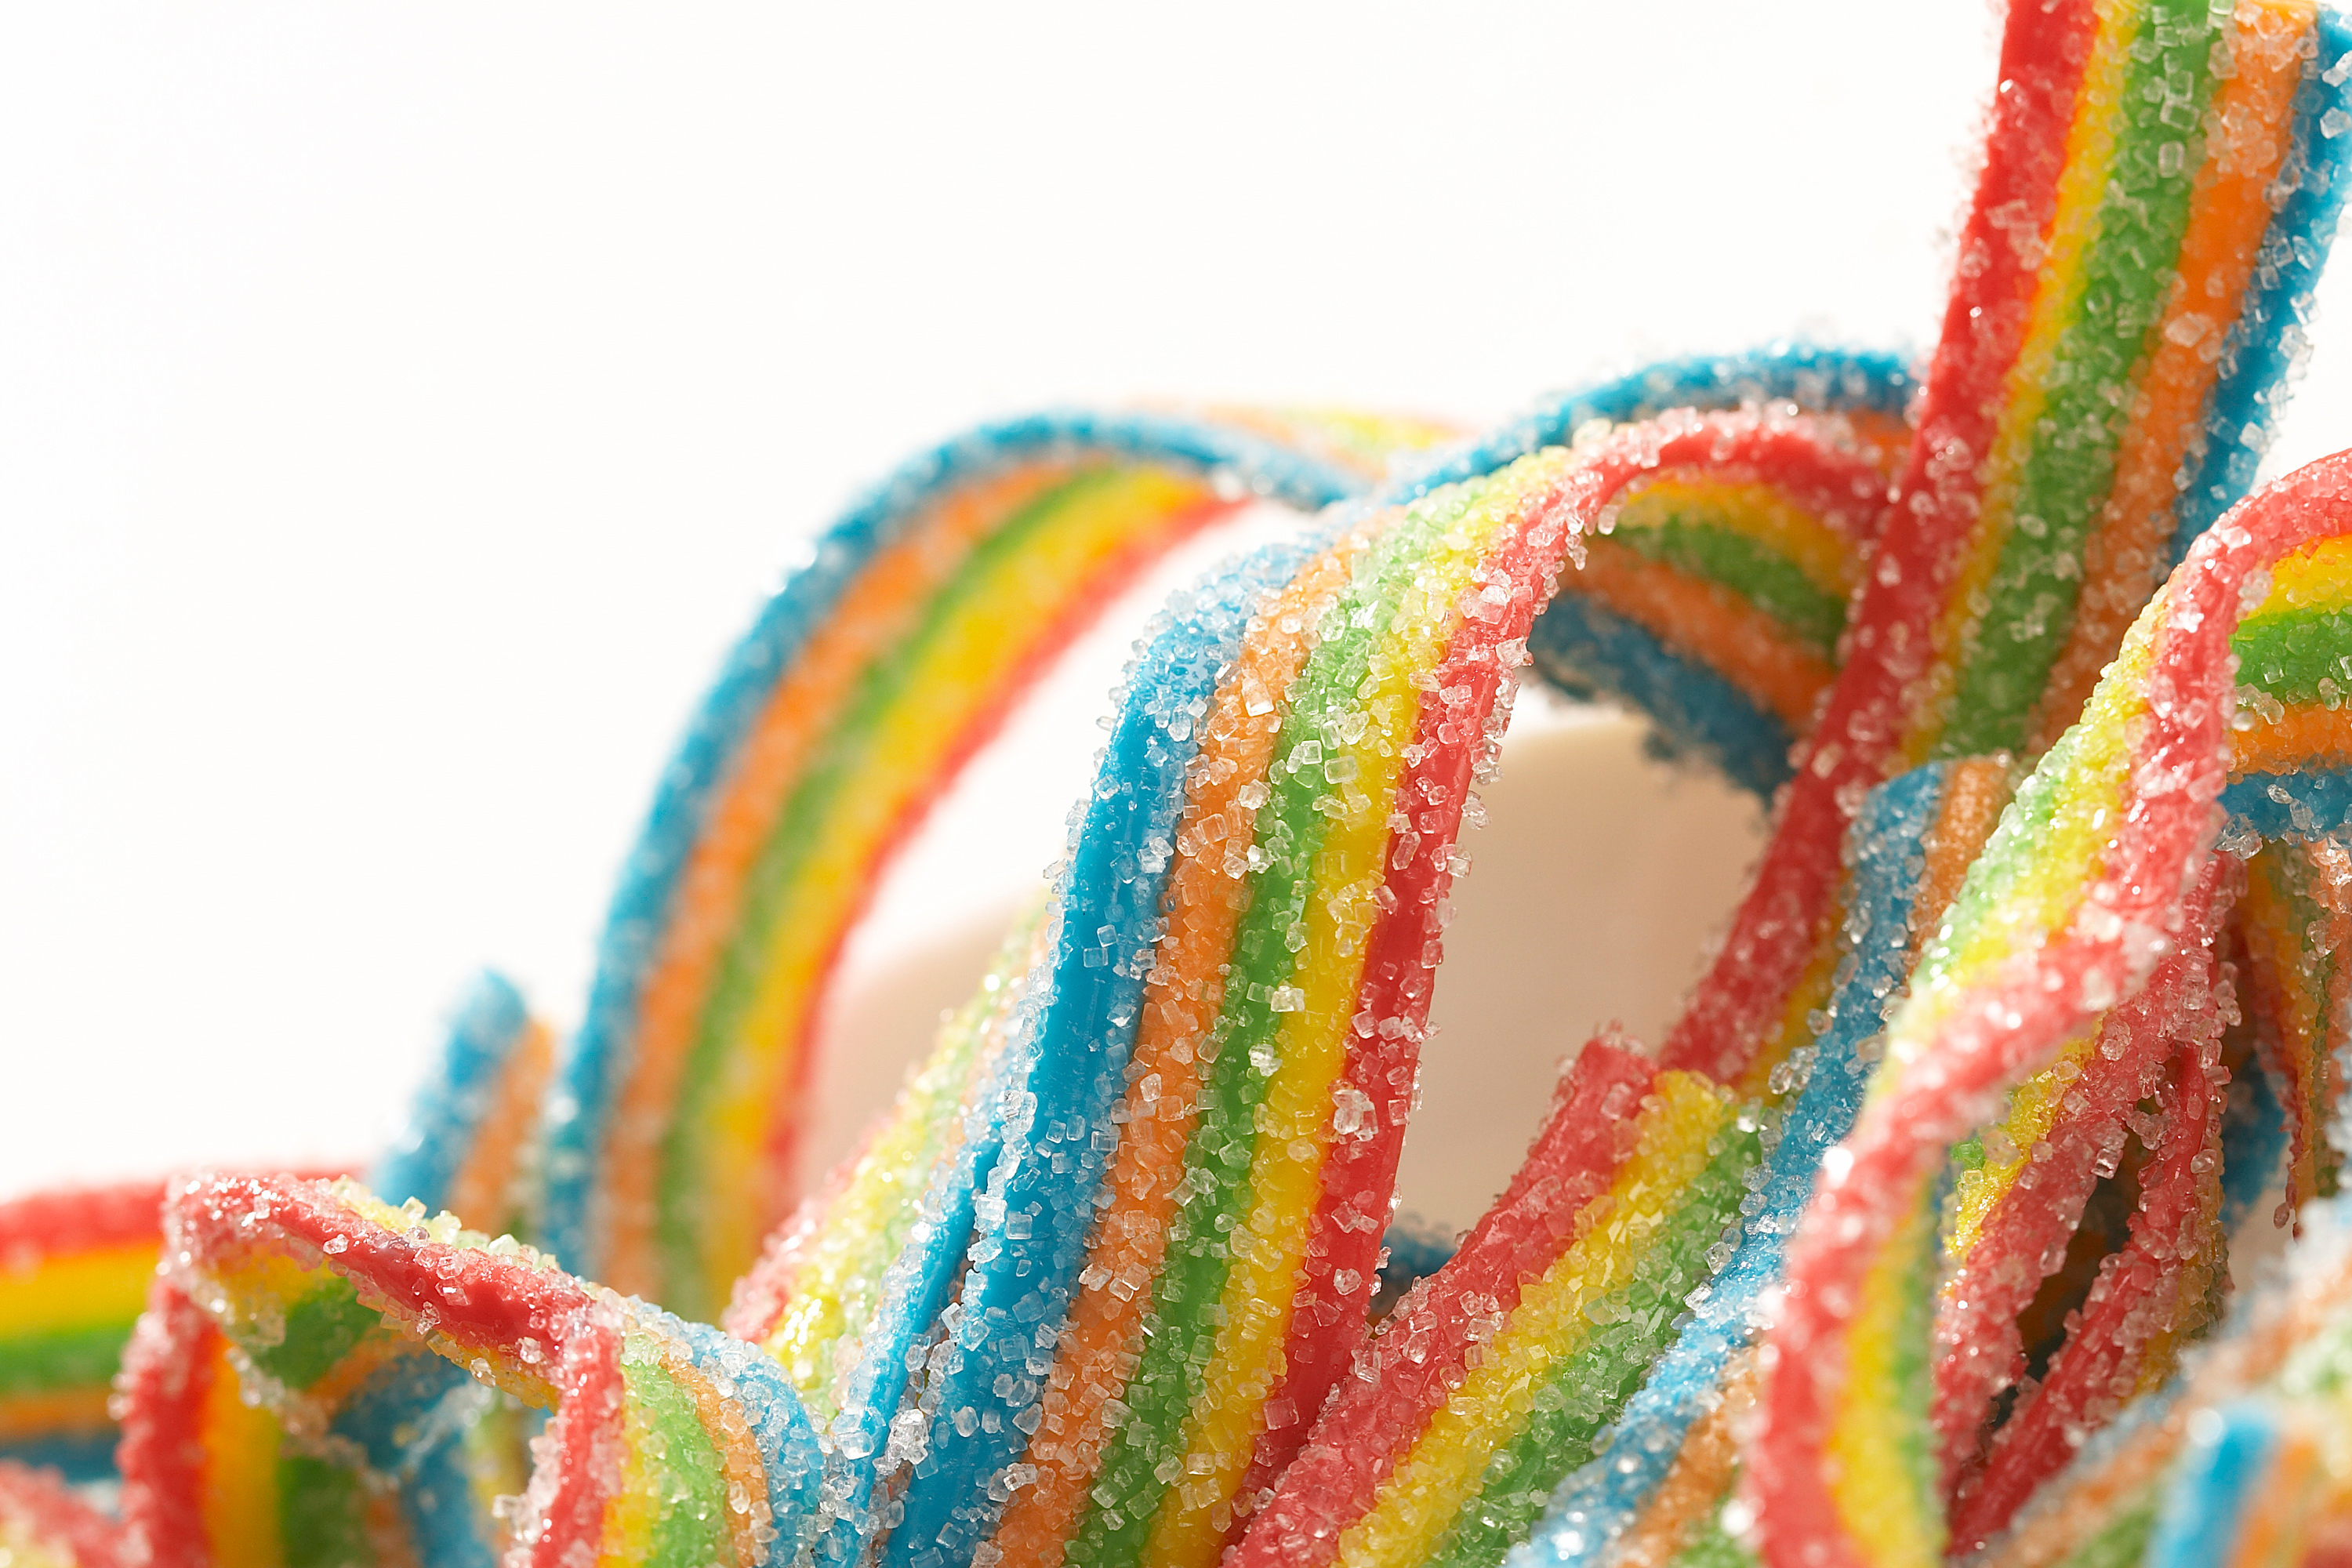 Barbie Hd Wallpapers Free Download Rainbow Ribbon Candy Foods